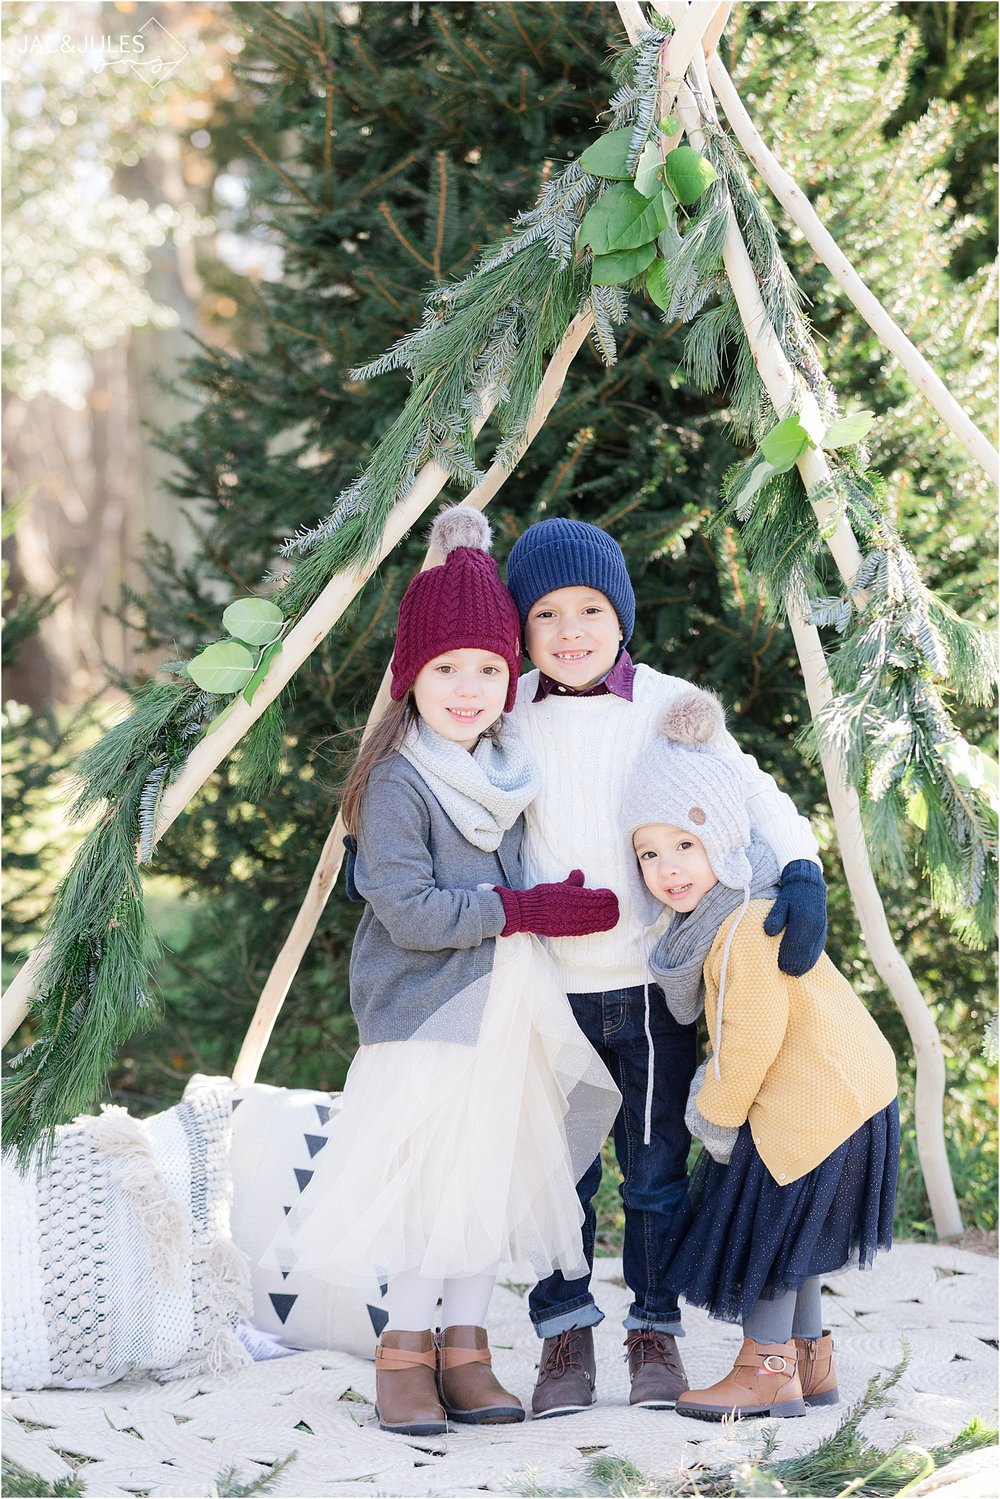 unique winter photos in NJ using teepee with garland